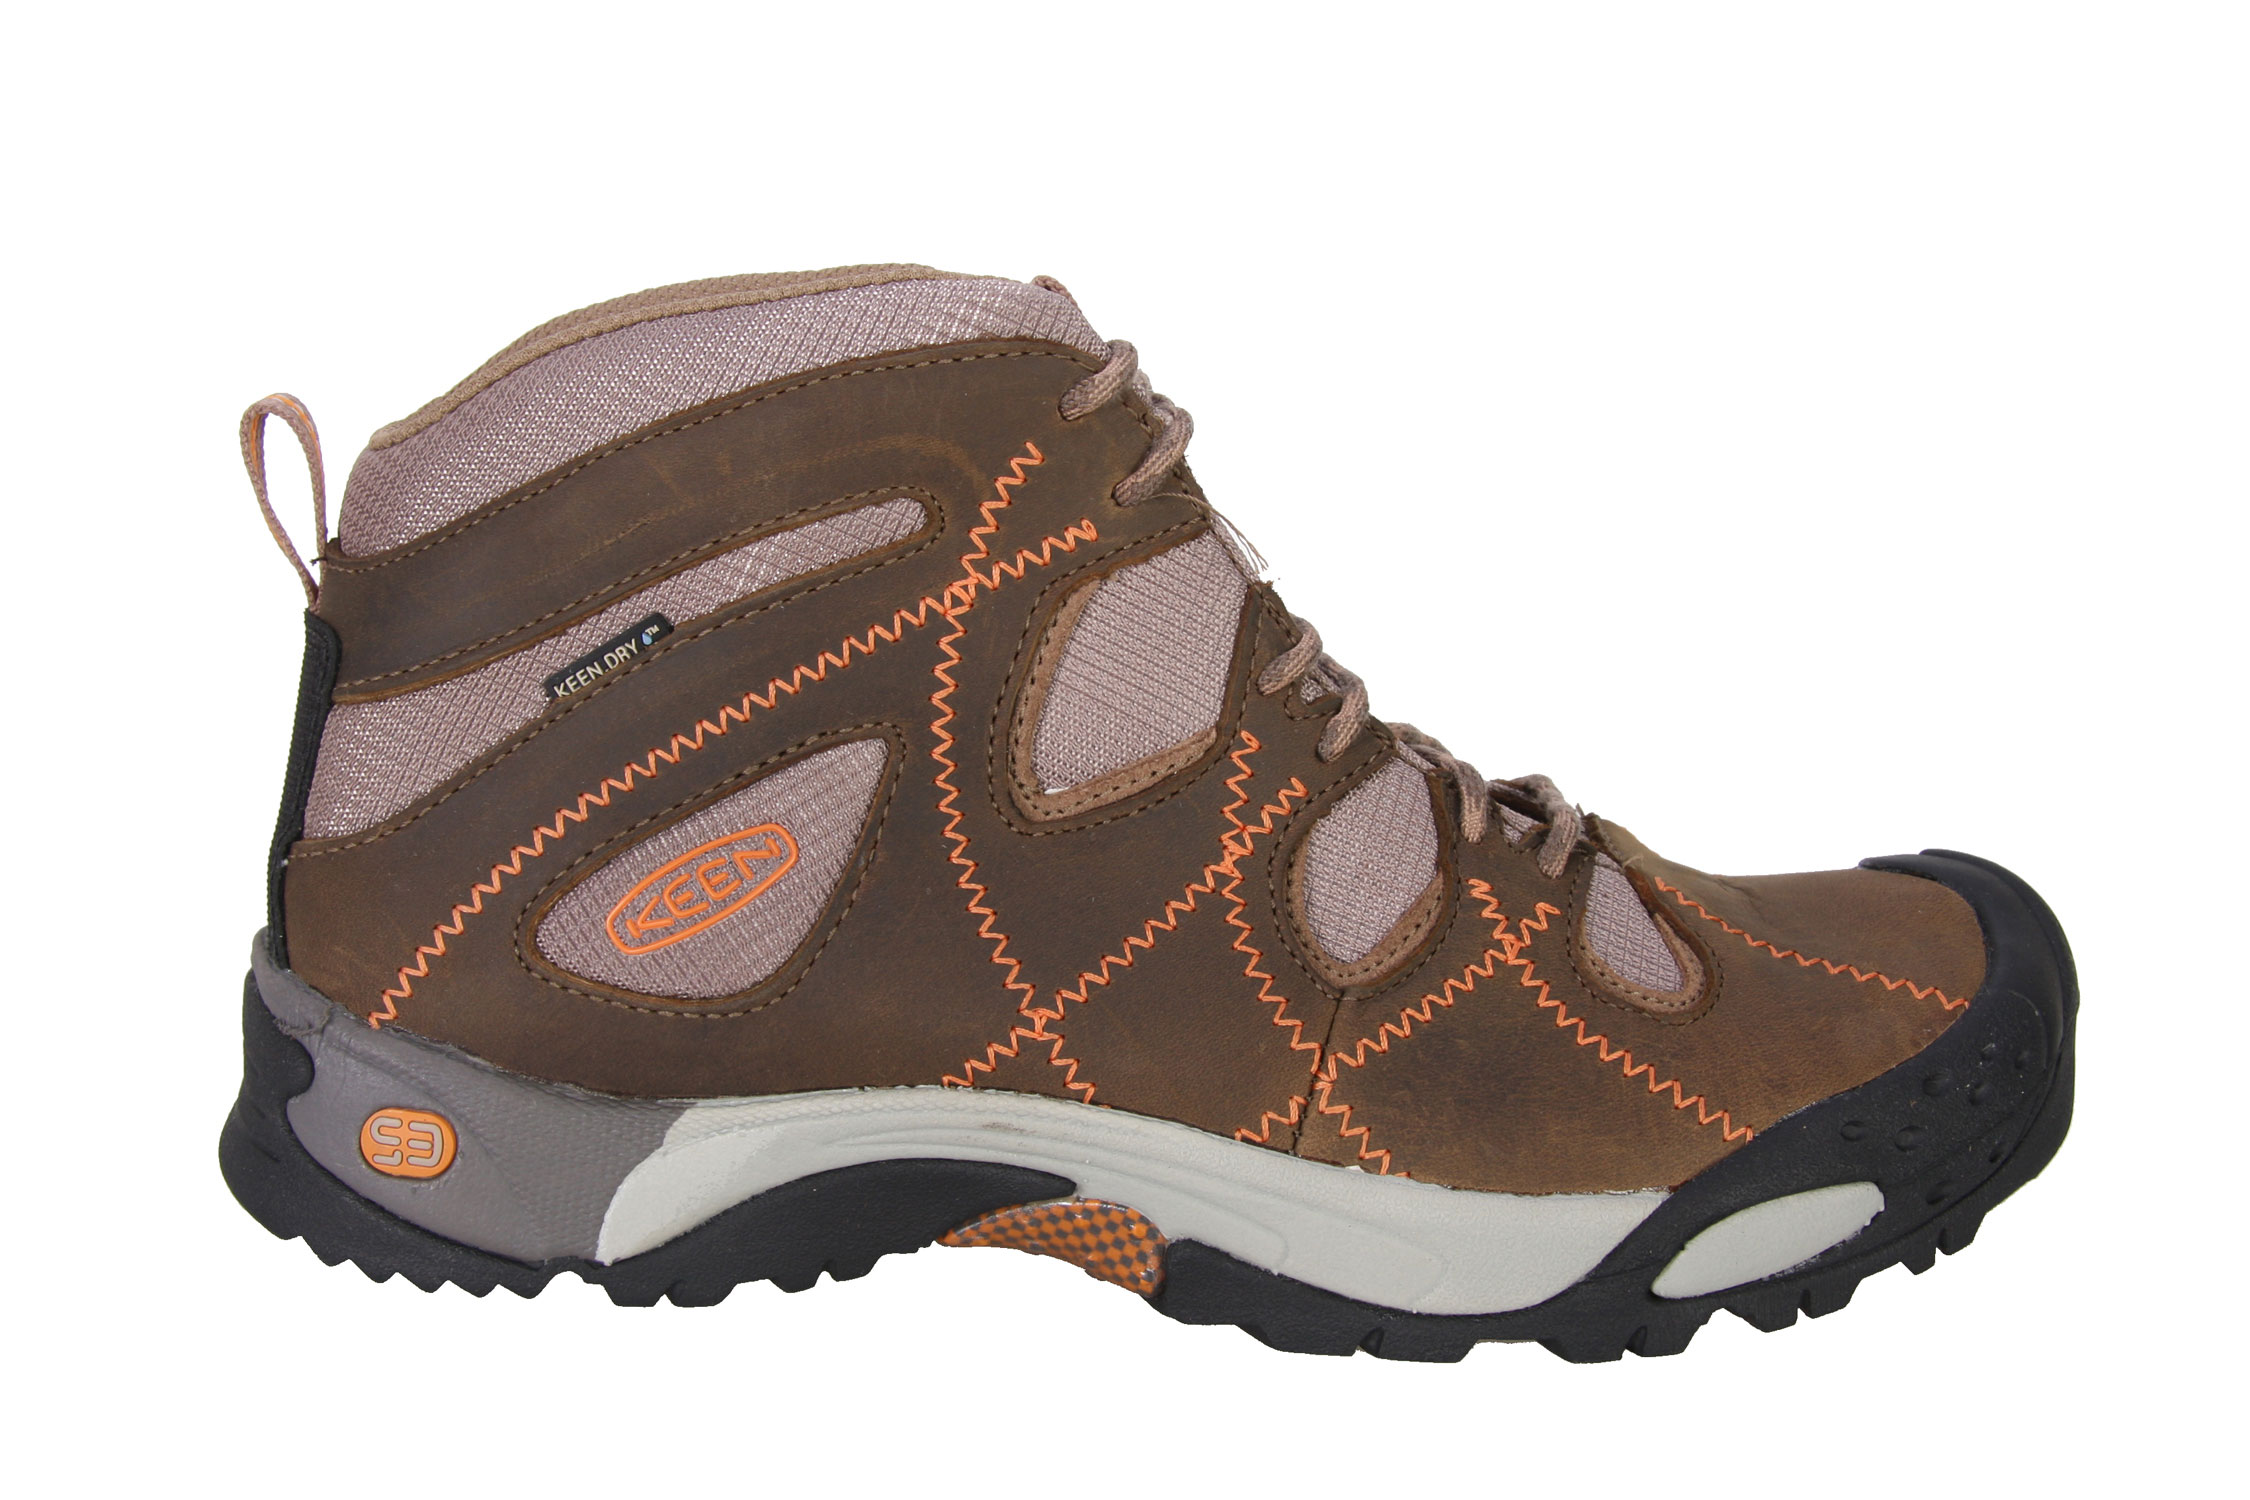 Camp and Hike Rise to a new zenith of outdoor performance with the Genoa Peak Mid WP from KEEN. This shoe brings KEEN comfort, technical precision and durability to a women's-specific fit. The KEEN.DRY waterproof membrane maintains breathability with weather protection. The grippy, rugged outsole provides enough cushioning and stability for any arduous trek.Key Features of The Keen Genoa Peak Mid Women's Hiking Shoes: Forefoot Y-flex grooves Heel motion stabilizer KEEN.DRY Waterproof breathable membrane S3 Heel support structure Sticky rubber traction edging zone Stone bruising protection plate Toe protection Torsion stability ESS shank Women's specific fit S3 - Shock, Suspension, Stability Metatomical Footbed Design Weight: 11.8 oz / 335 grams Fit Tip: We find this style runs about a 1/2 size small Lining: KEEN.DRY Waterproof / breathable textile, KEEN.DRY Waterproof membrane / breathable textile Upper: Leather, Synthetic Rubber: Non-marking rubber outsole Activities: Hiking Type: Boots, Cold Weather Boots, Lace Up Weather: Wet - waterproof Keen Protection - KEEN Patented Toe Protection where the shoe outsoles wrap up and over the toes for ultimate protection - $74.95